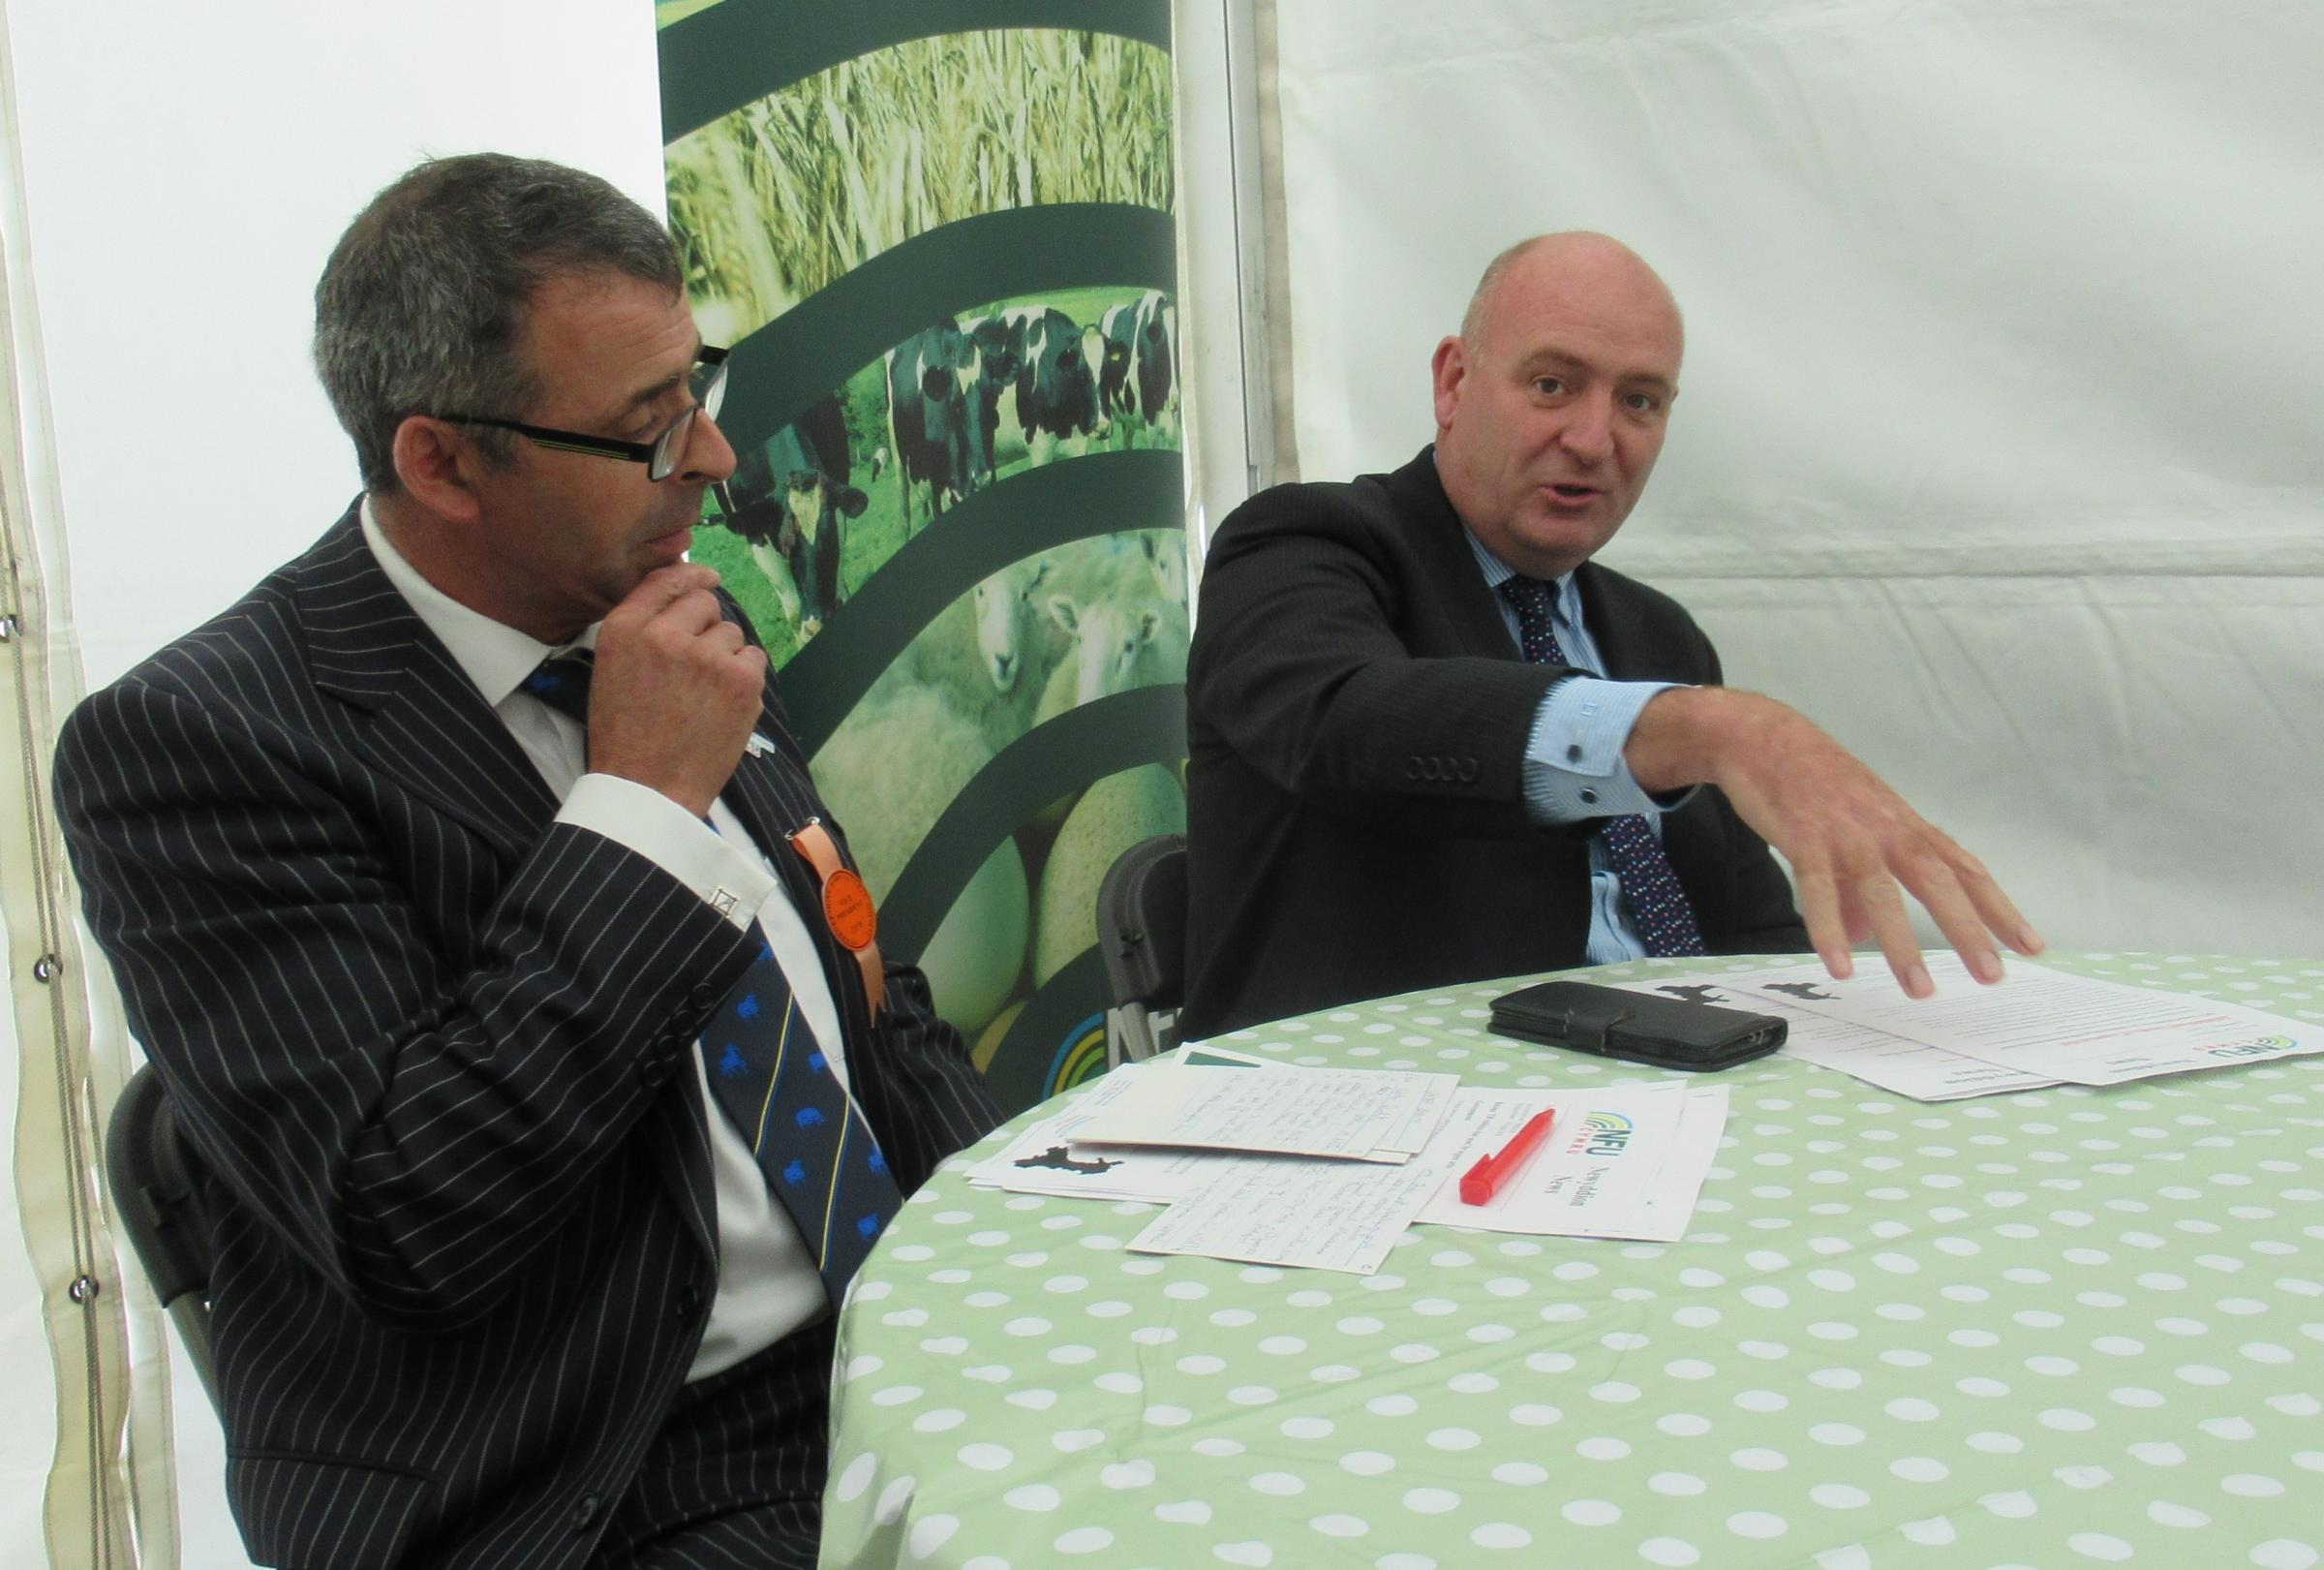 NFU Cymru president John Davies (right) and county chairman Jeff Evans put their cards on the table at the County Show PICTURE: Pembrokeshire Farmer